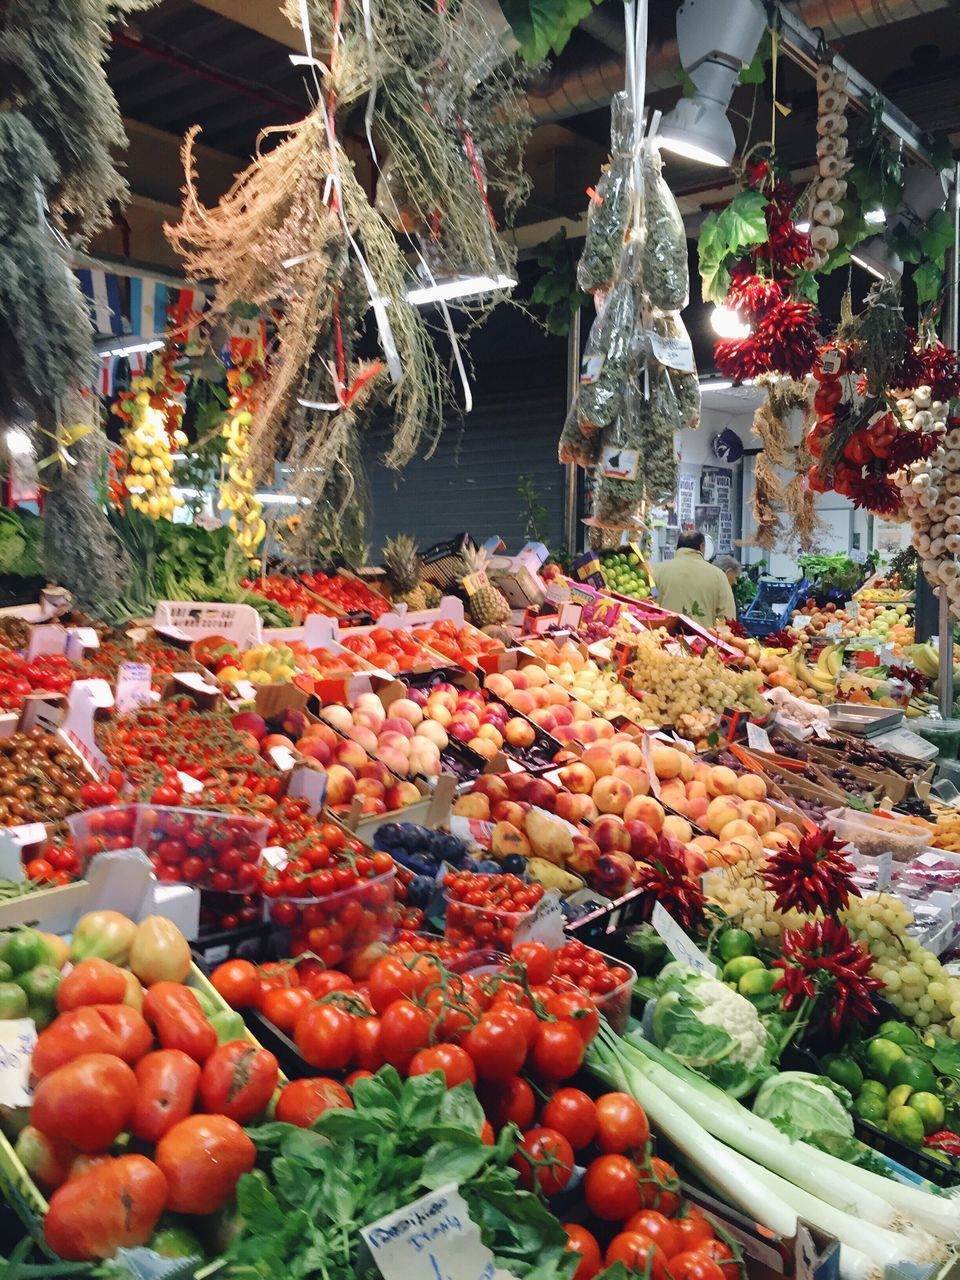 food, food and drink, choice, abundance, retail, variation, for sale, vegetable, market stall, freshness, market, large group of objects, healthy eating, fruit, tomato, no people, outdoors, small business, day, close-up